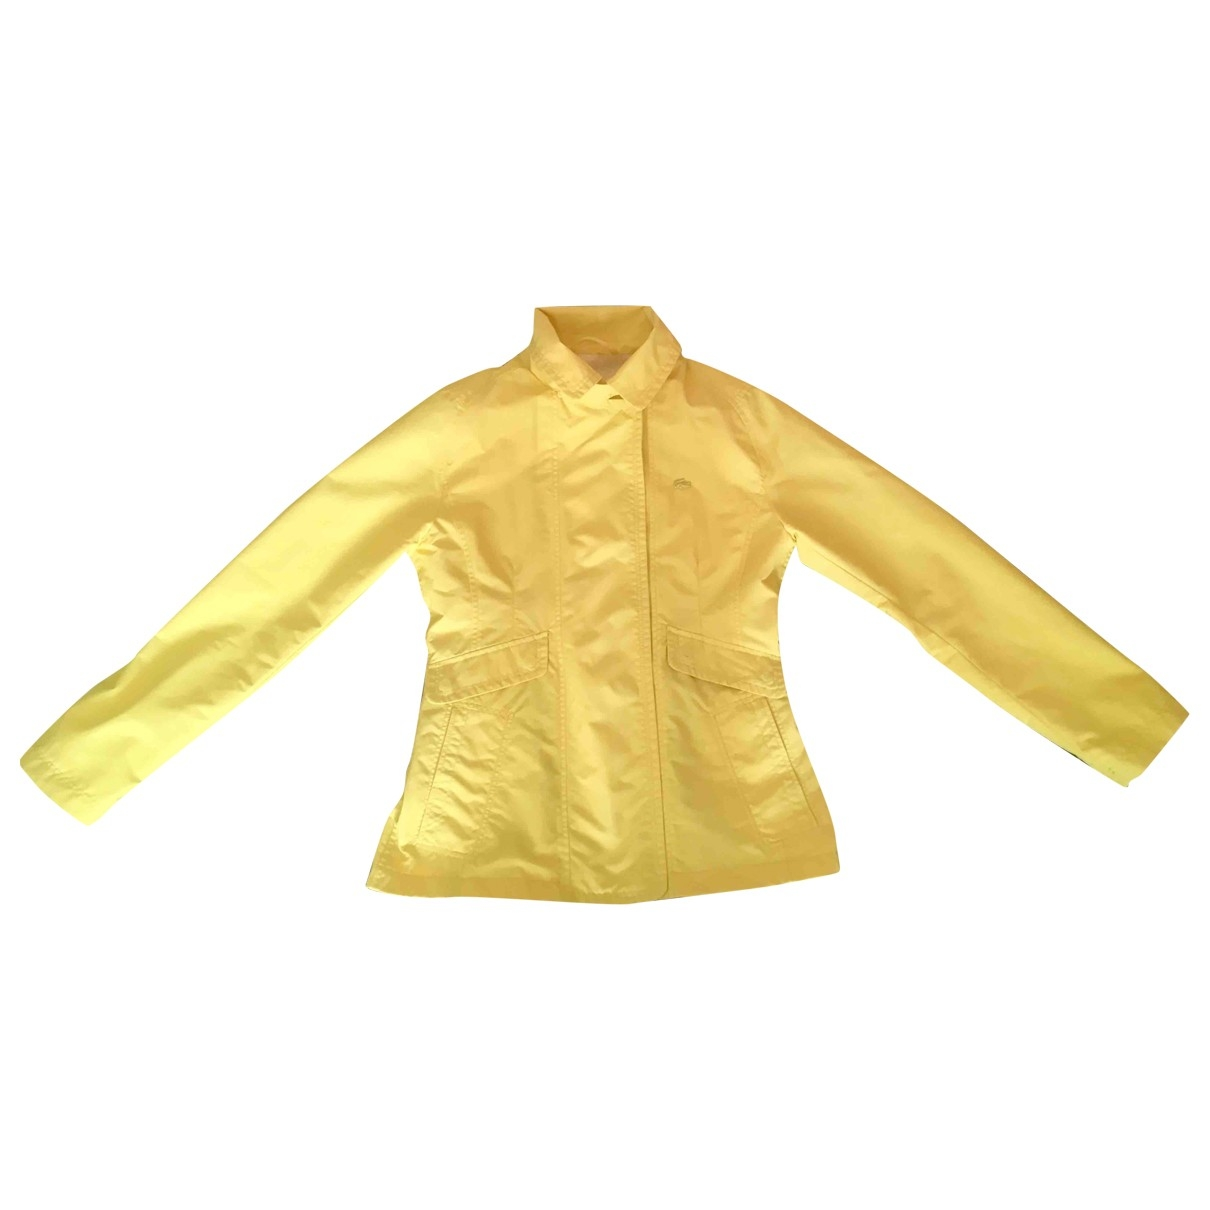 Lacoste \N Yellow jacket for Women 38 FR